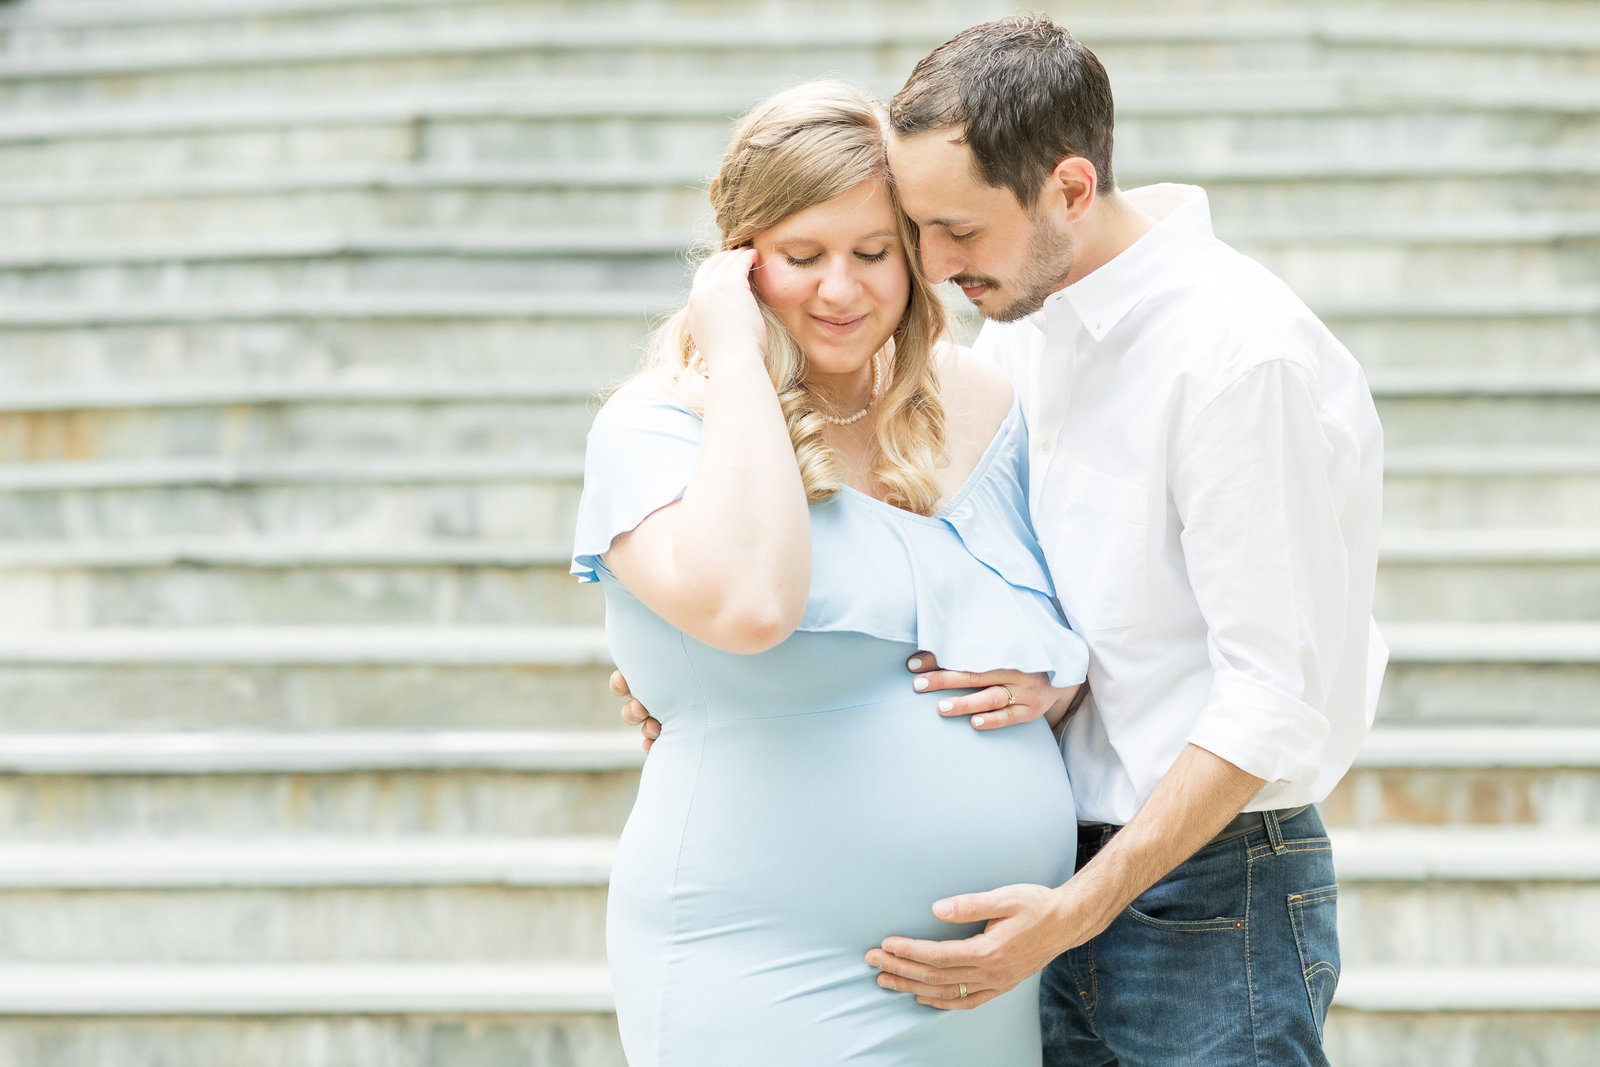 kimberly-ben-summer-maternity-photo-session-at-airlie-warrenton-va-011